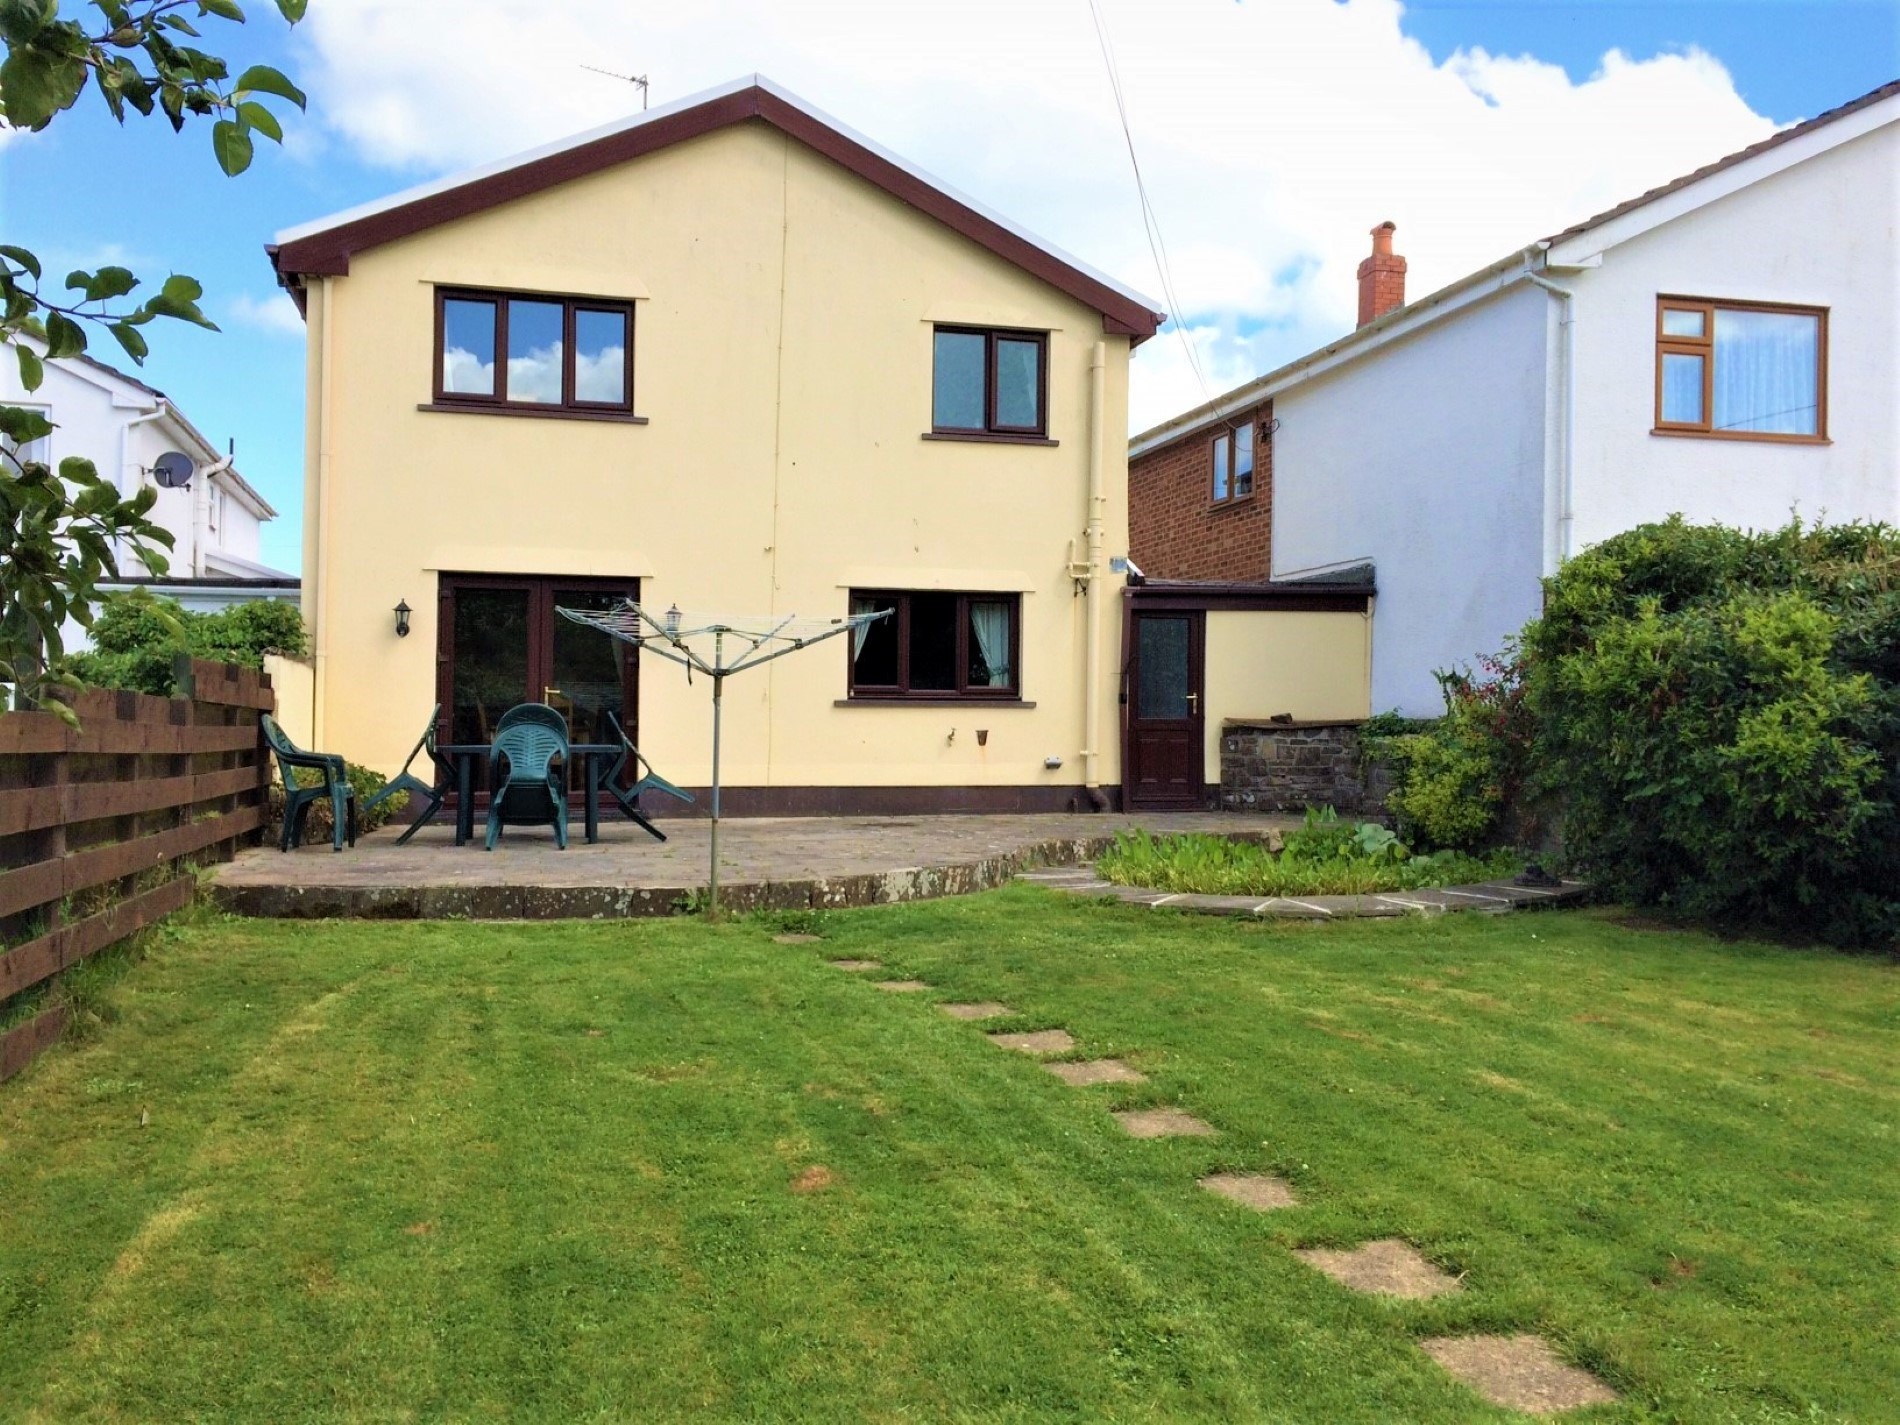 3 Bedroom Cottage in Tenby, Mid Wales